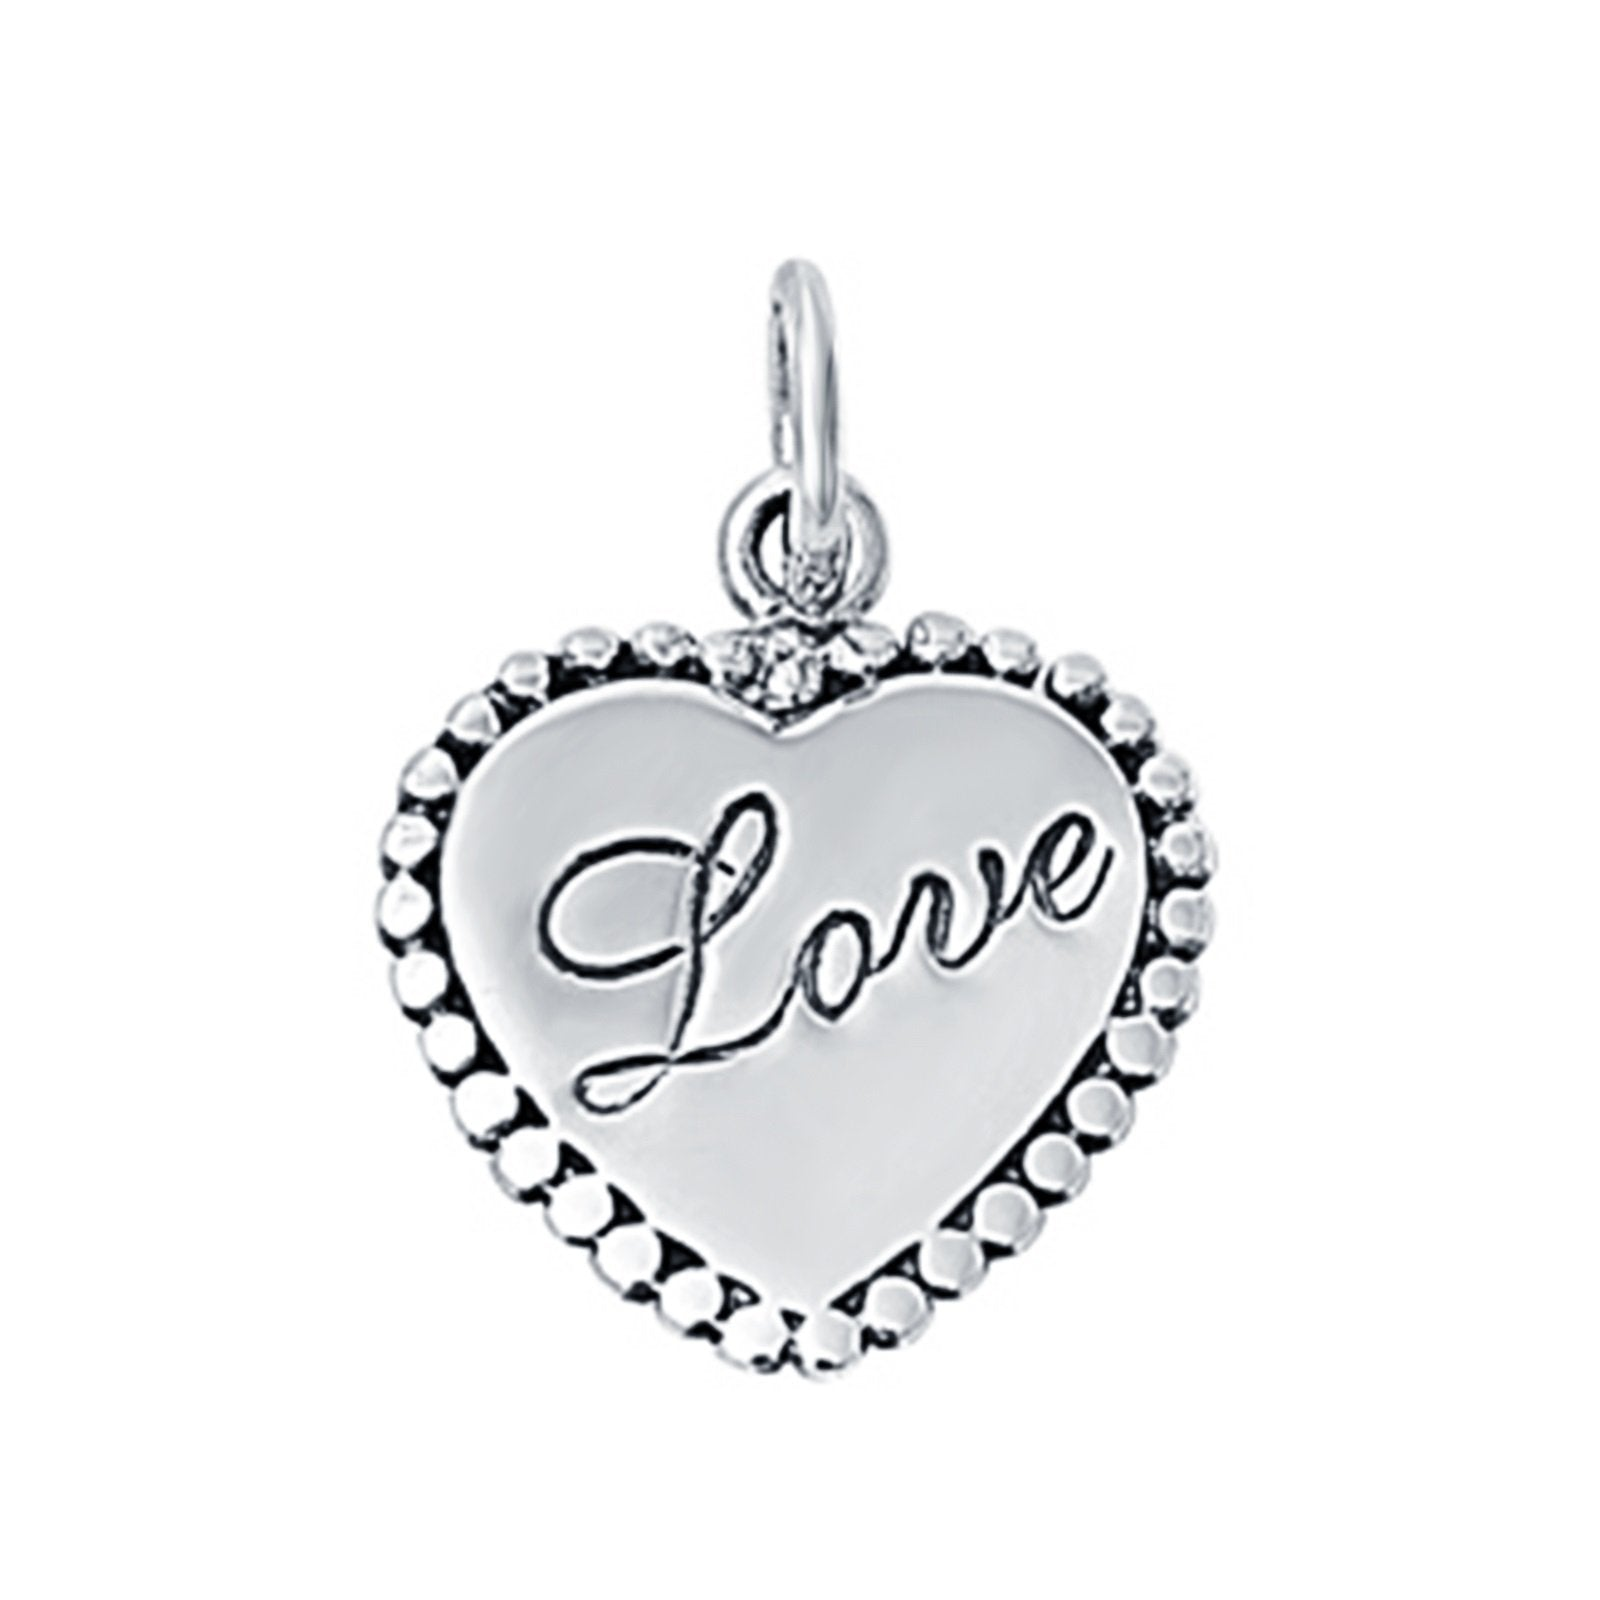 Heart Engraved Love Pendant Charm 925 Sterling Silver